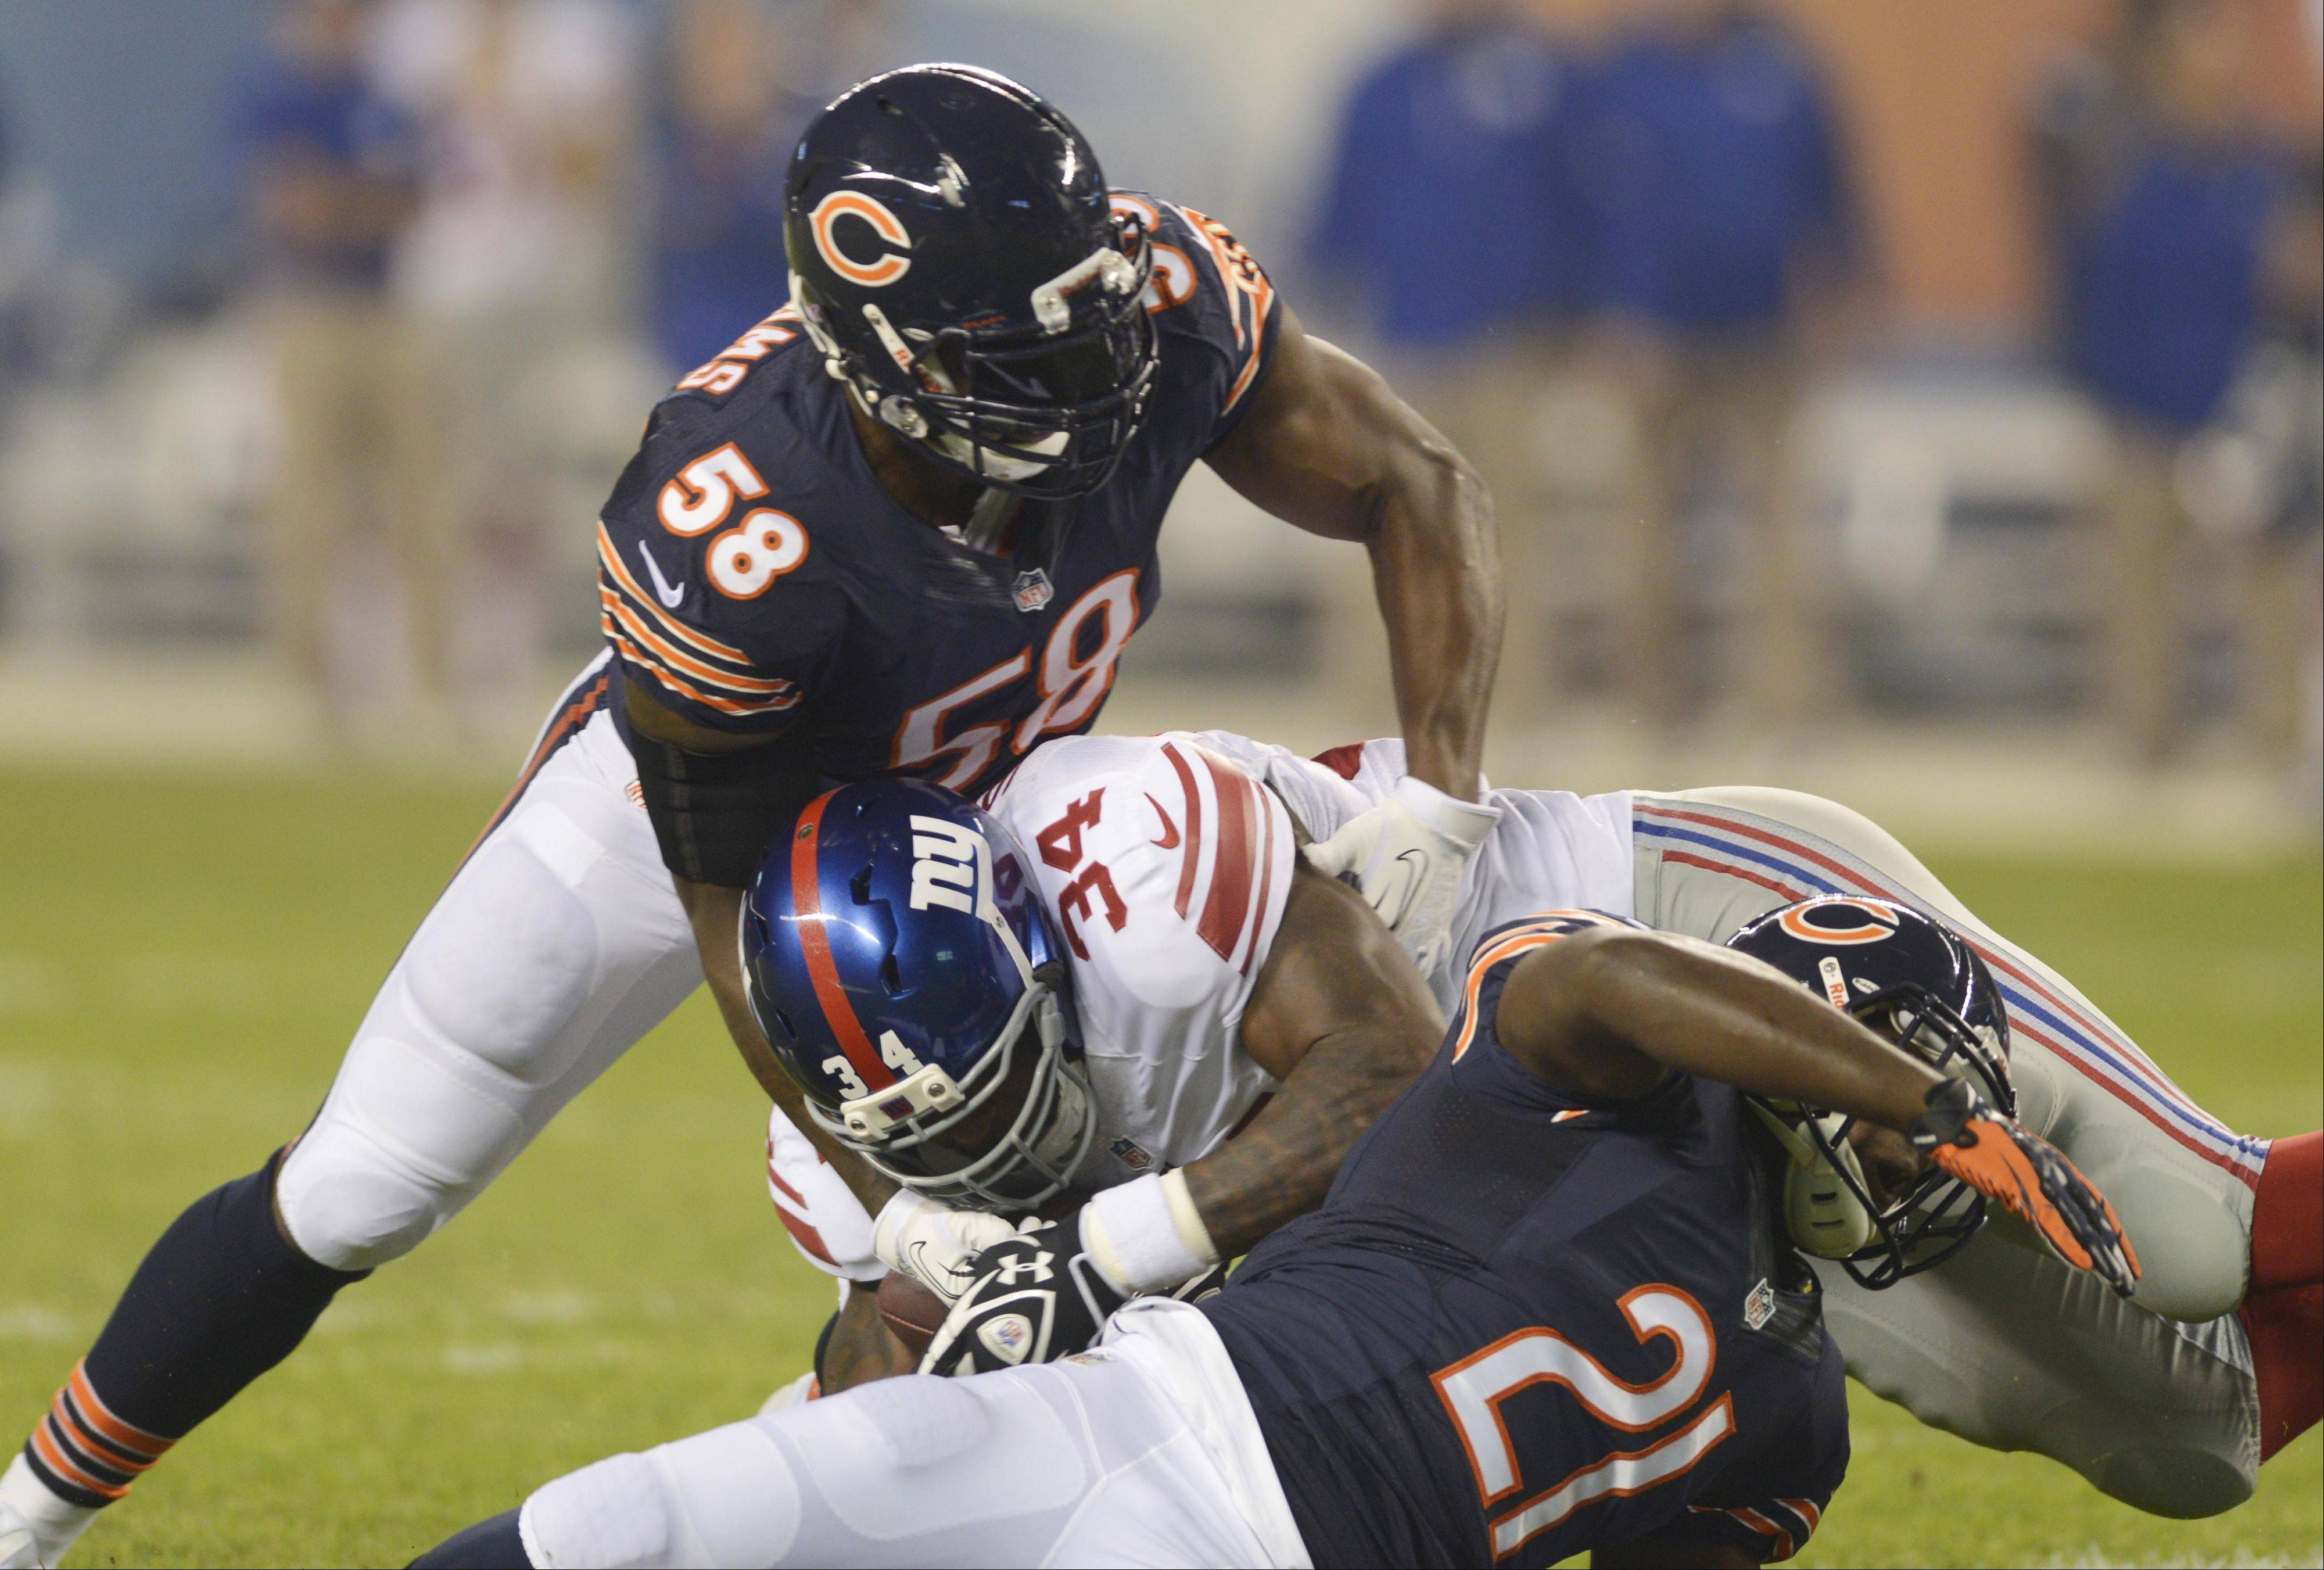 Middlelinebacker D.J. Williams (58) and safety Major Wright tackle Giants running back Brandon Jacobs Thursday night at Soldier Field in Chicago. Williams suffered a season-ending injury in the game.